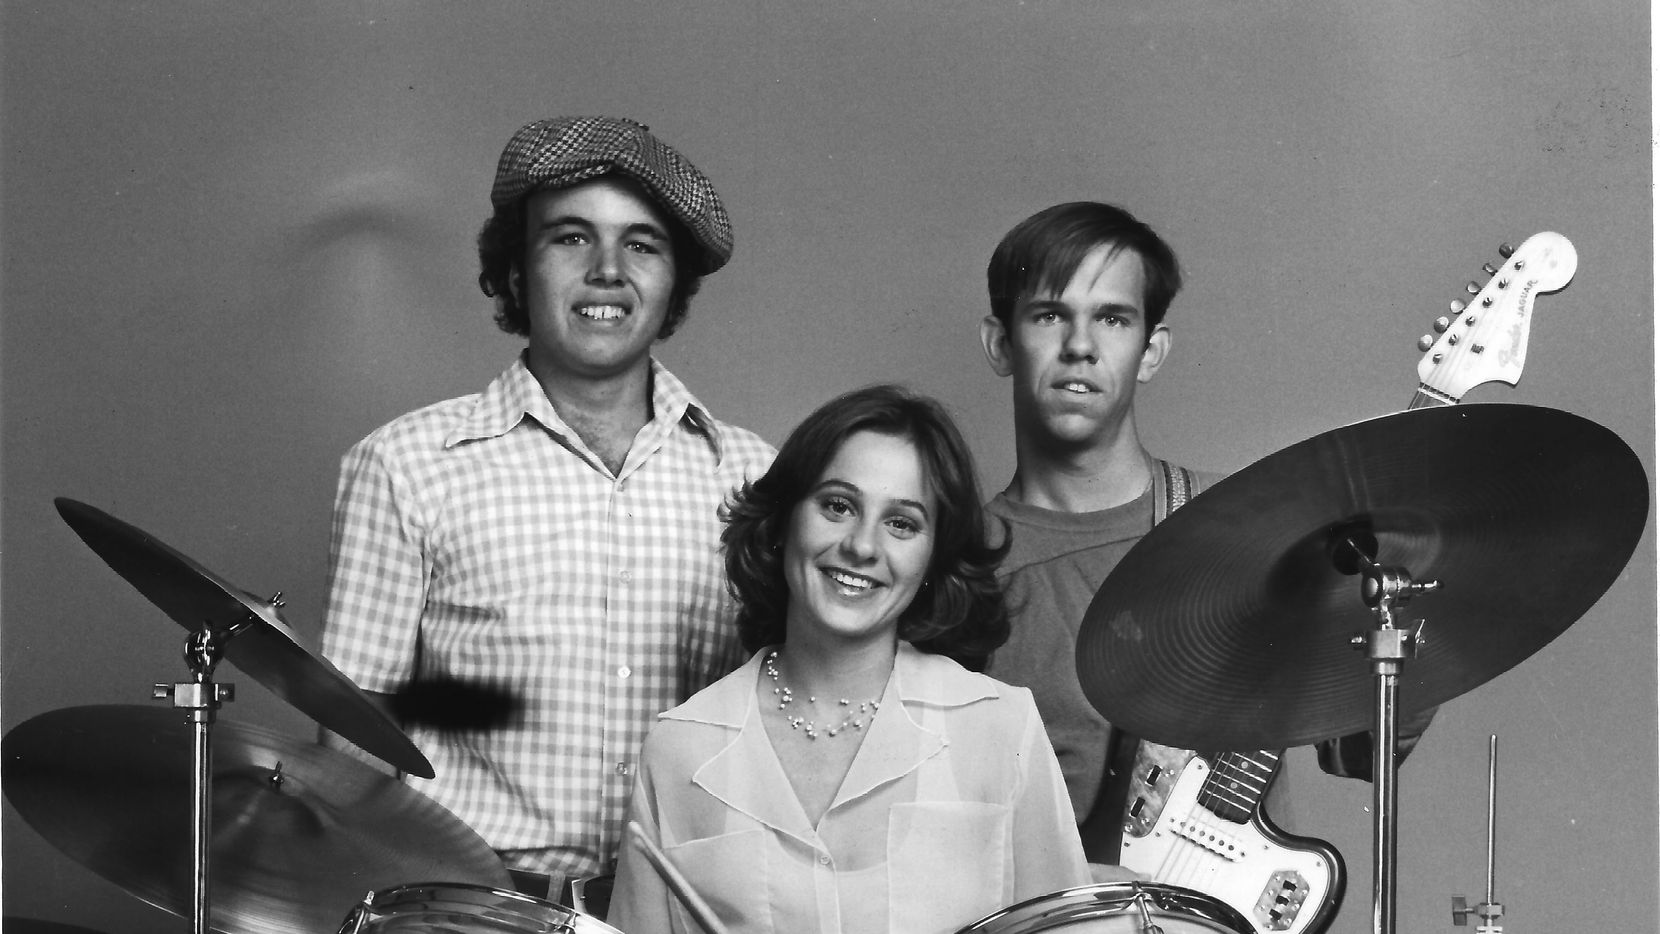 Clint Howard, at left, managed the fictional band Cotton Candy, and wrote the TV movie (and novelization) with brother Ron